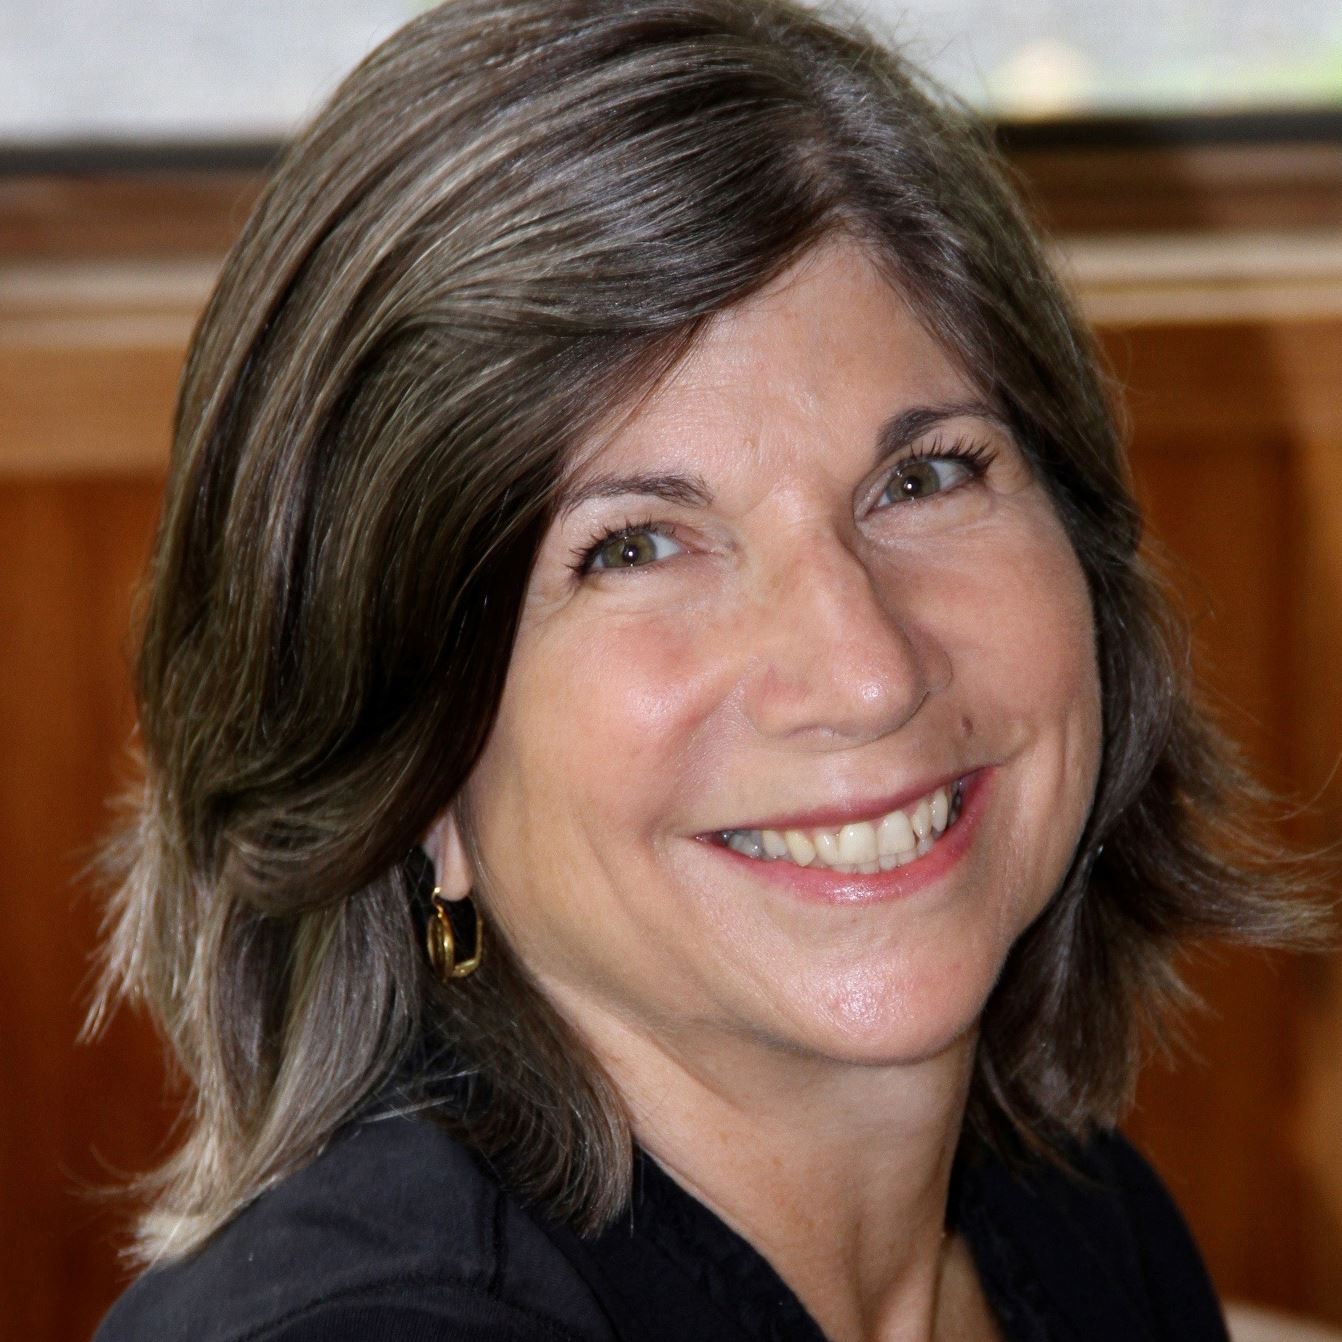 essay driving to the funeral by anna quindlen Quindlen: driving to the funeral by anna quindlen on 6/10/07 at 8:00 pm  share culture the four years of high school grind inexorably to a close, the.